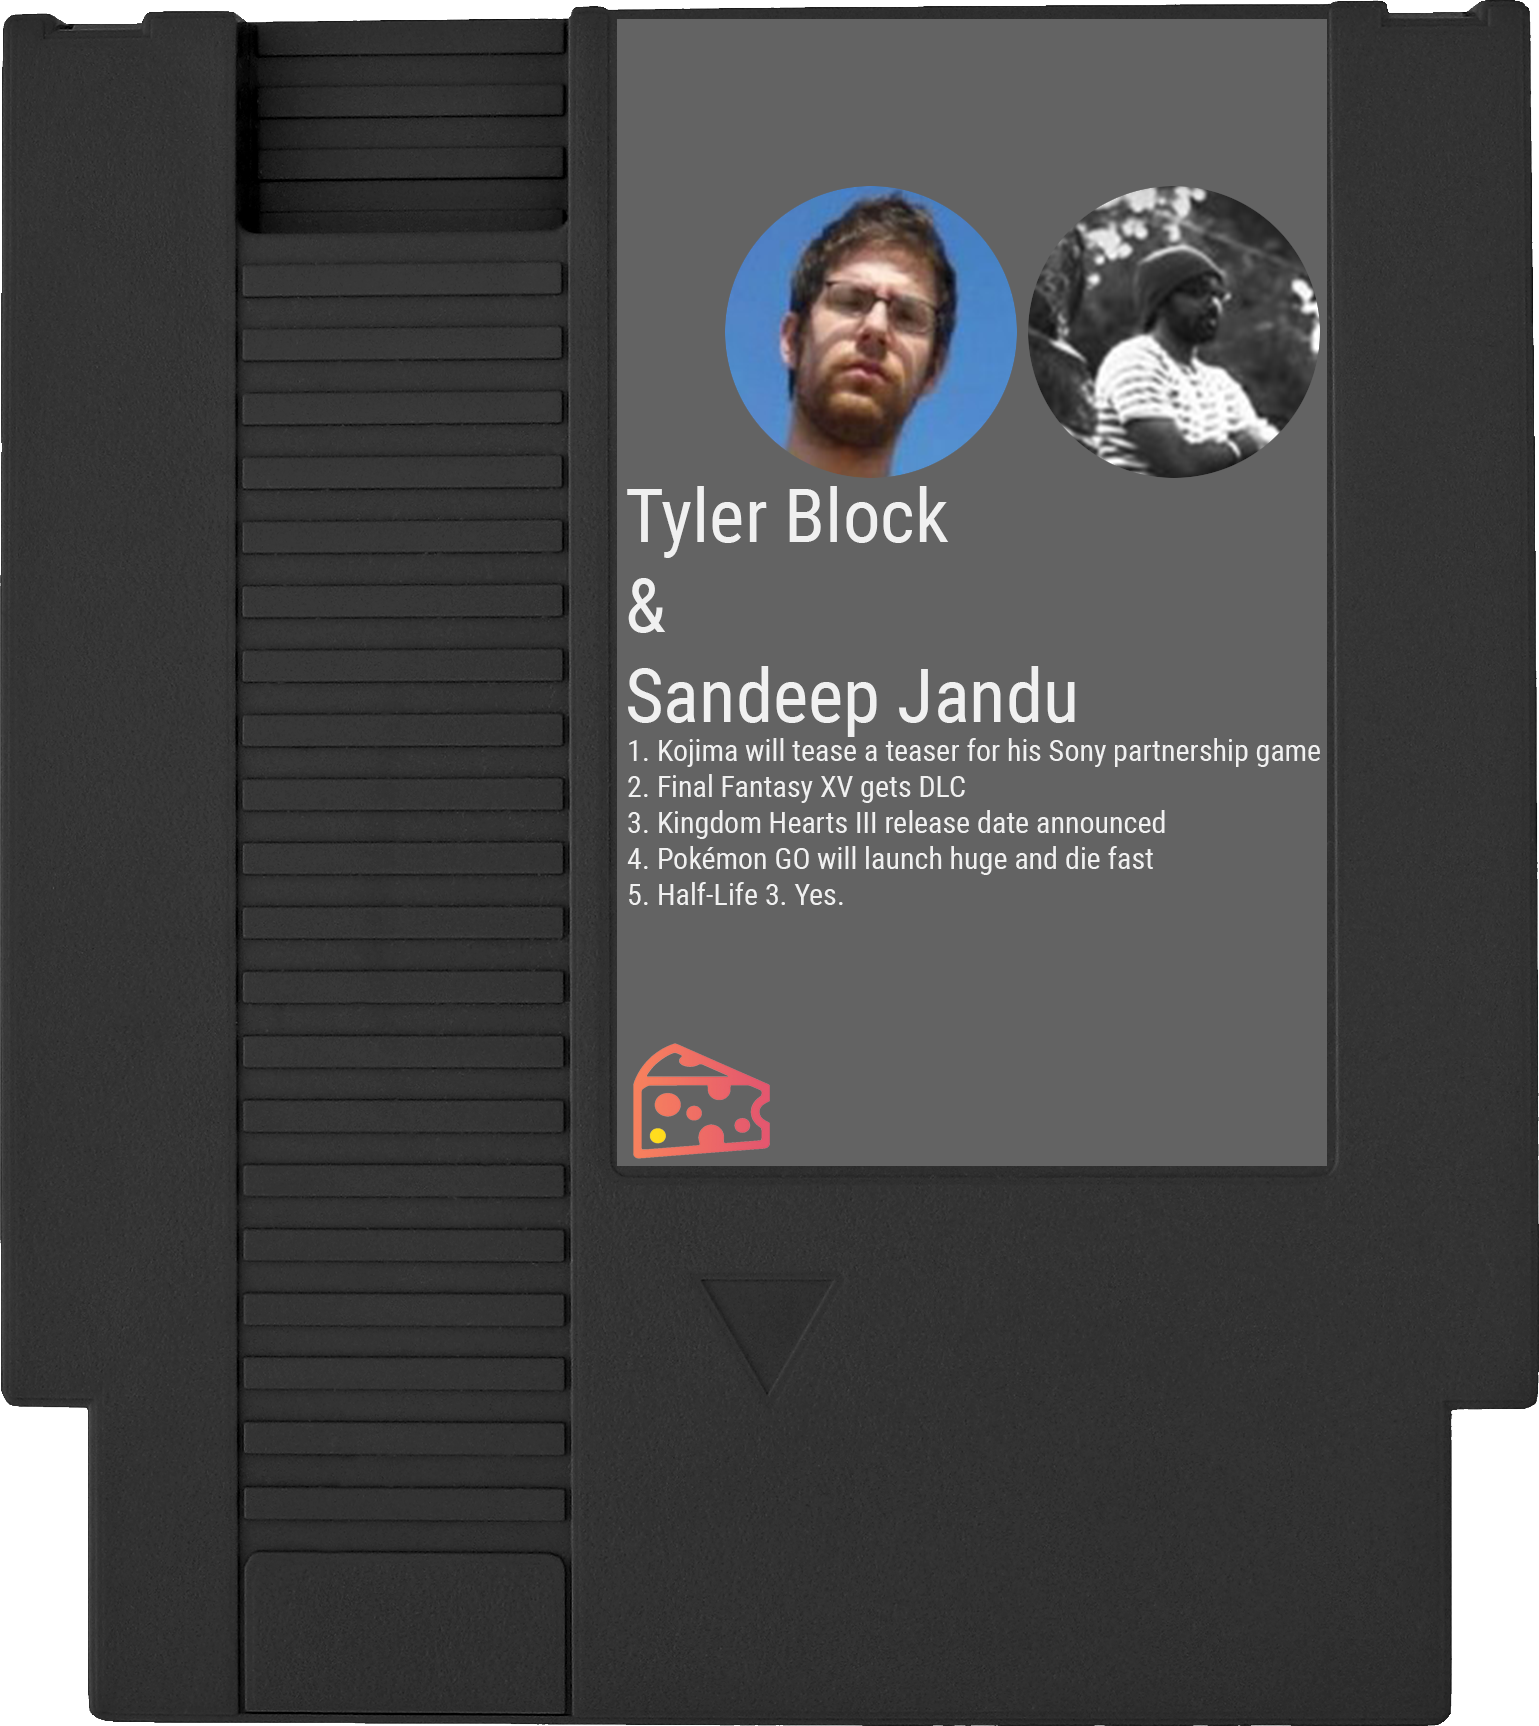 tyler-block-sandeep-jandu-2016-predictions